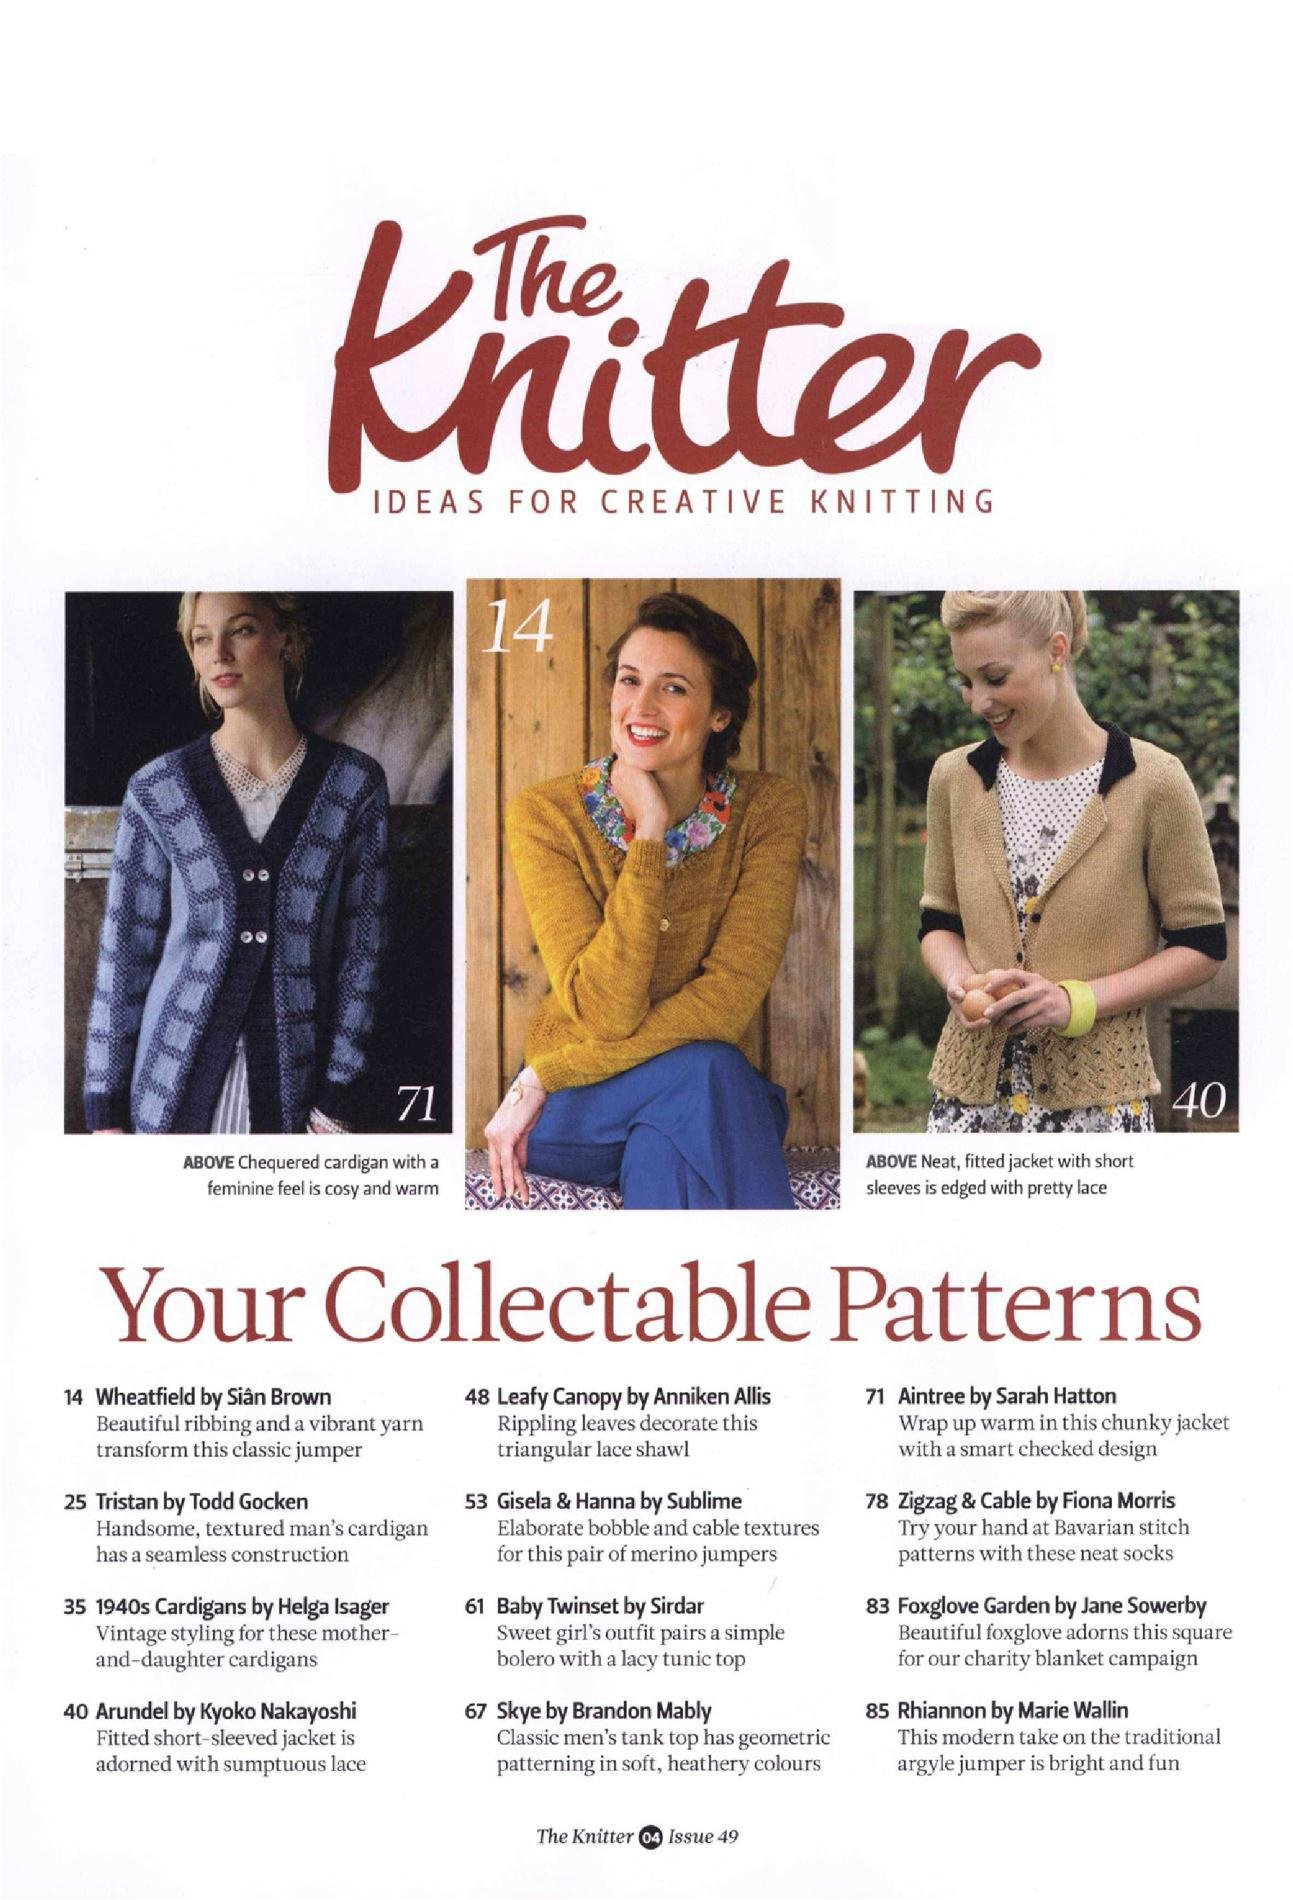 the-knitter-issue-49-2012(1).jpeg